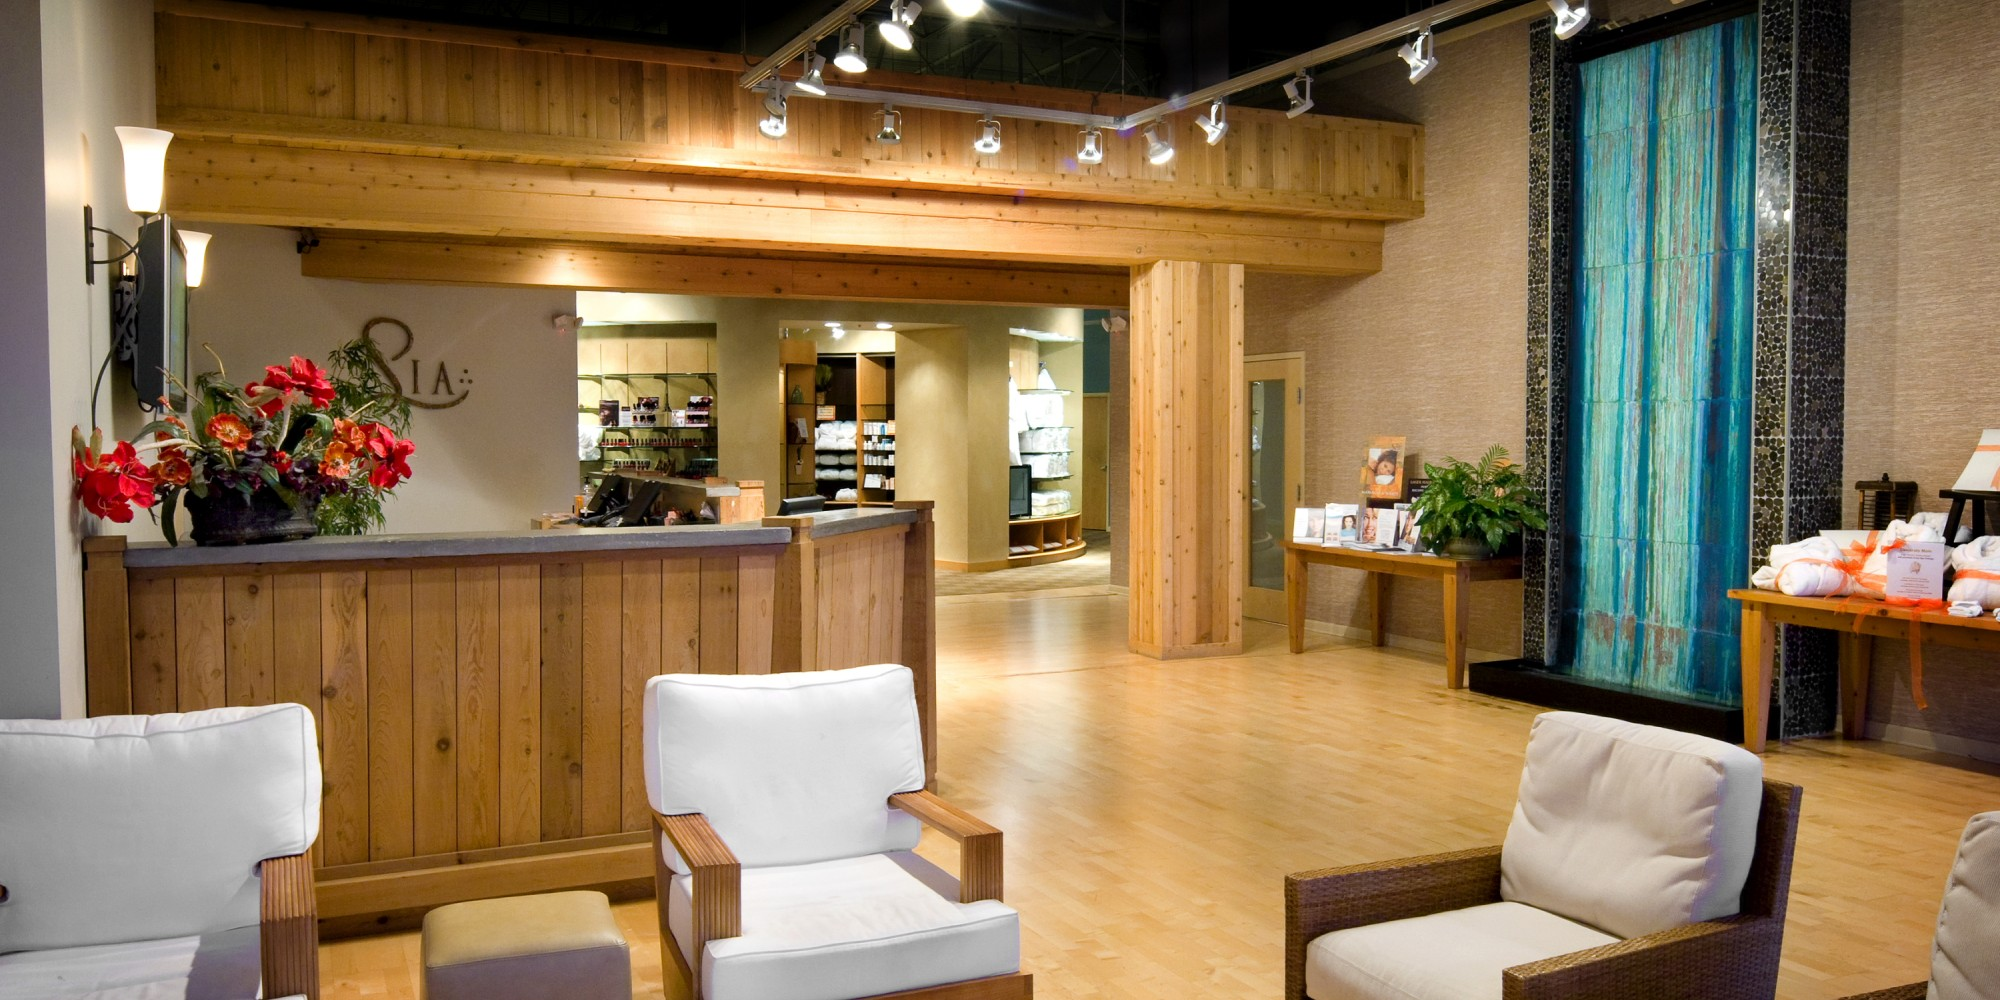 Commercial Spa Interior Design